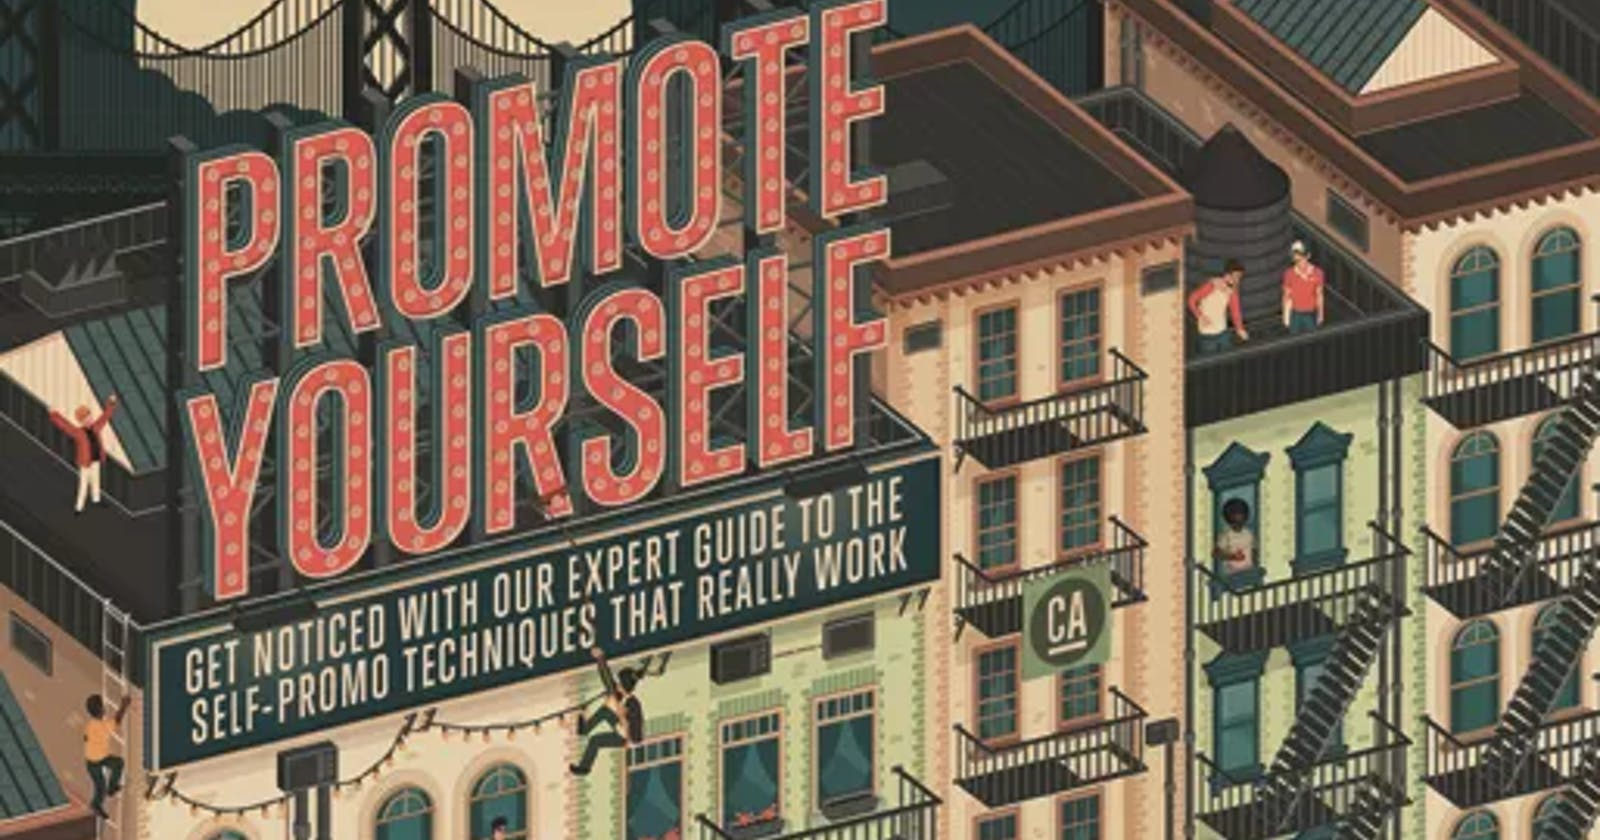 What I've learnt: The importance of self-promotion